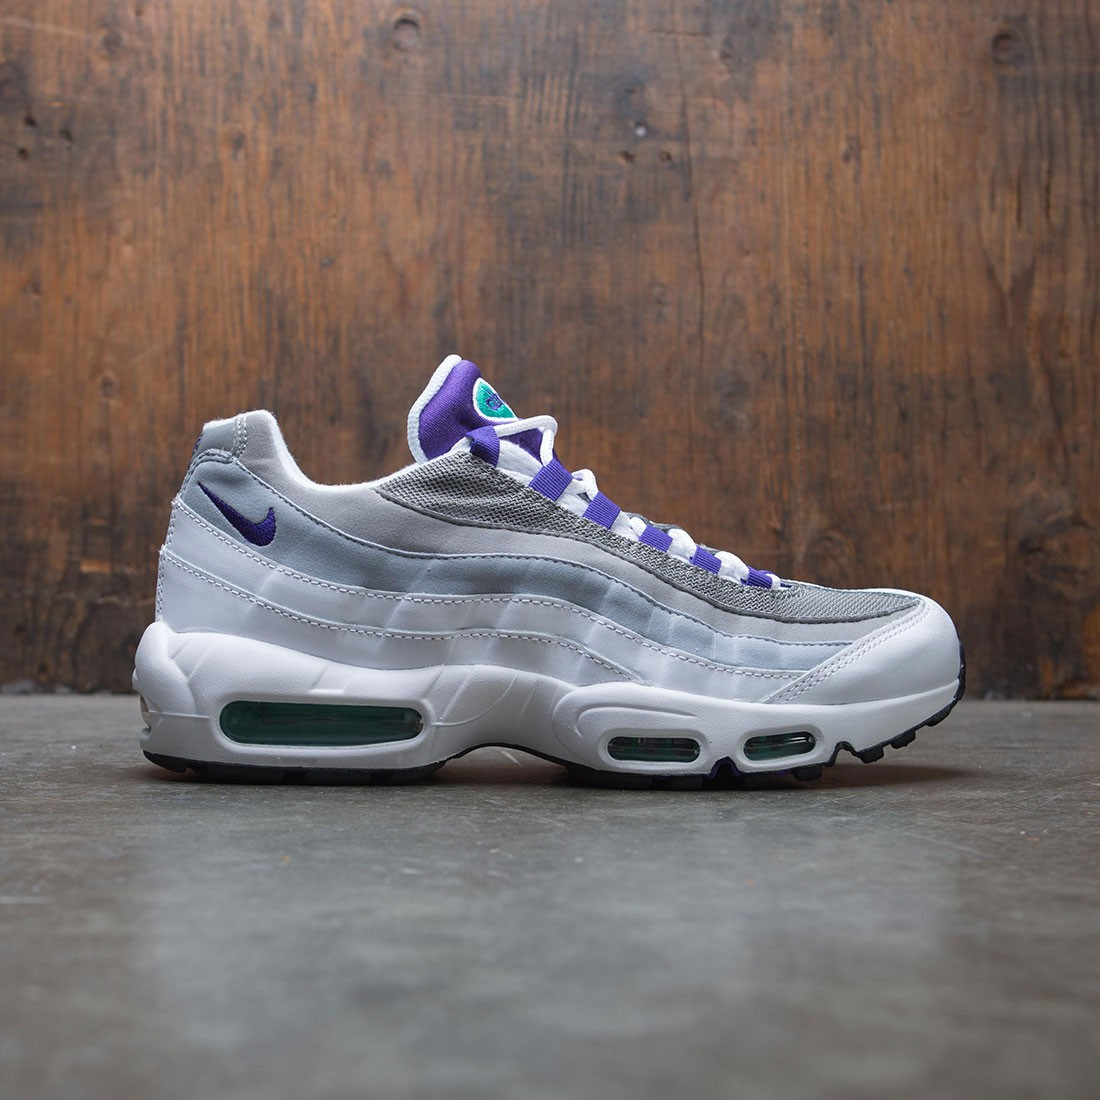 best sneakers b3305 fef0e ... wholesale nike women air max 95 white court purple emerald green f089f  1d417